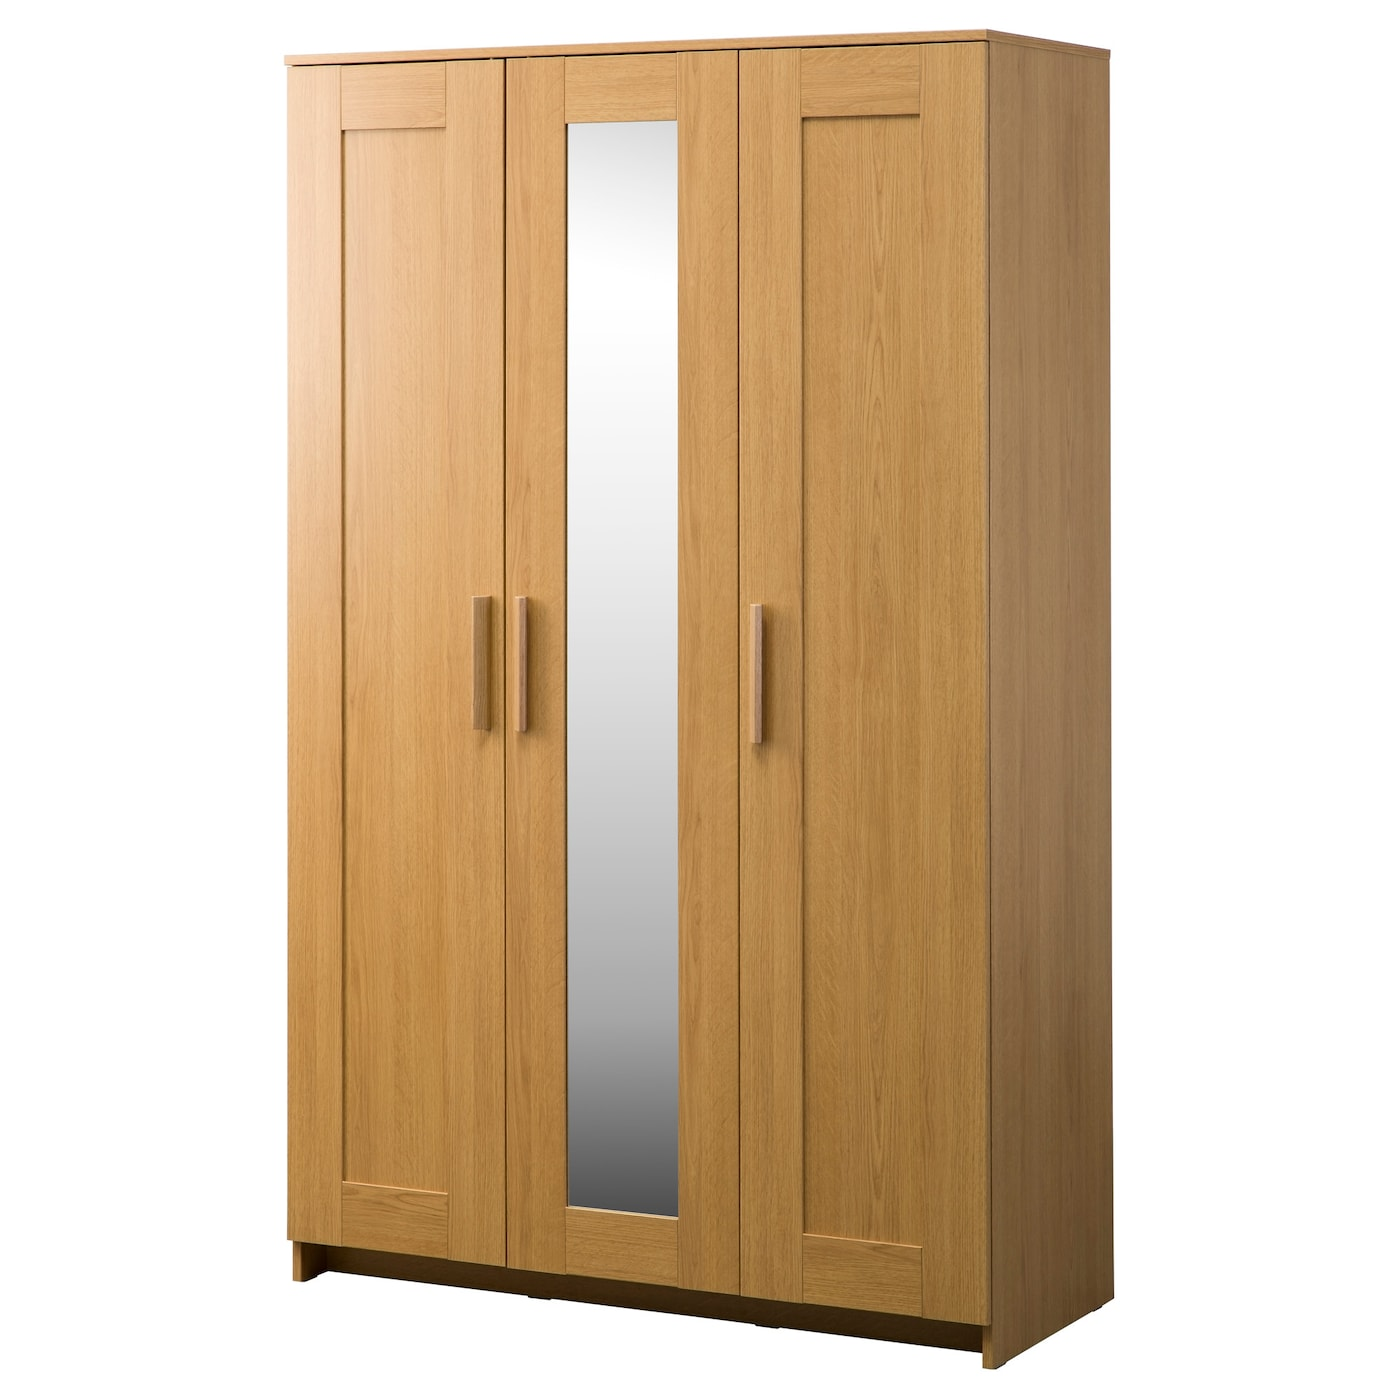 brimnes wardrobe with 3 doors oak effect 117x190 cm ikea